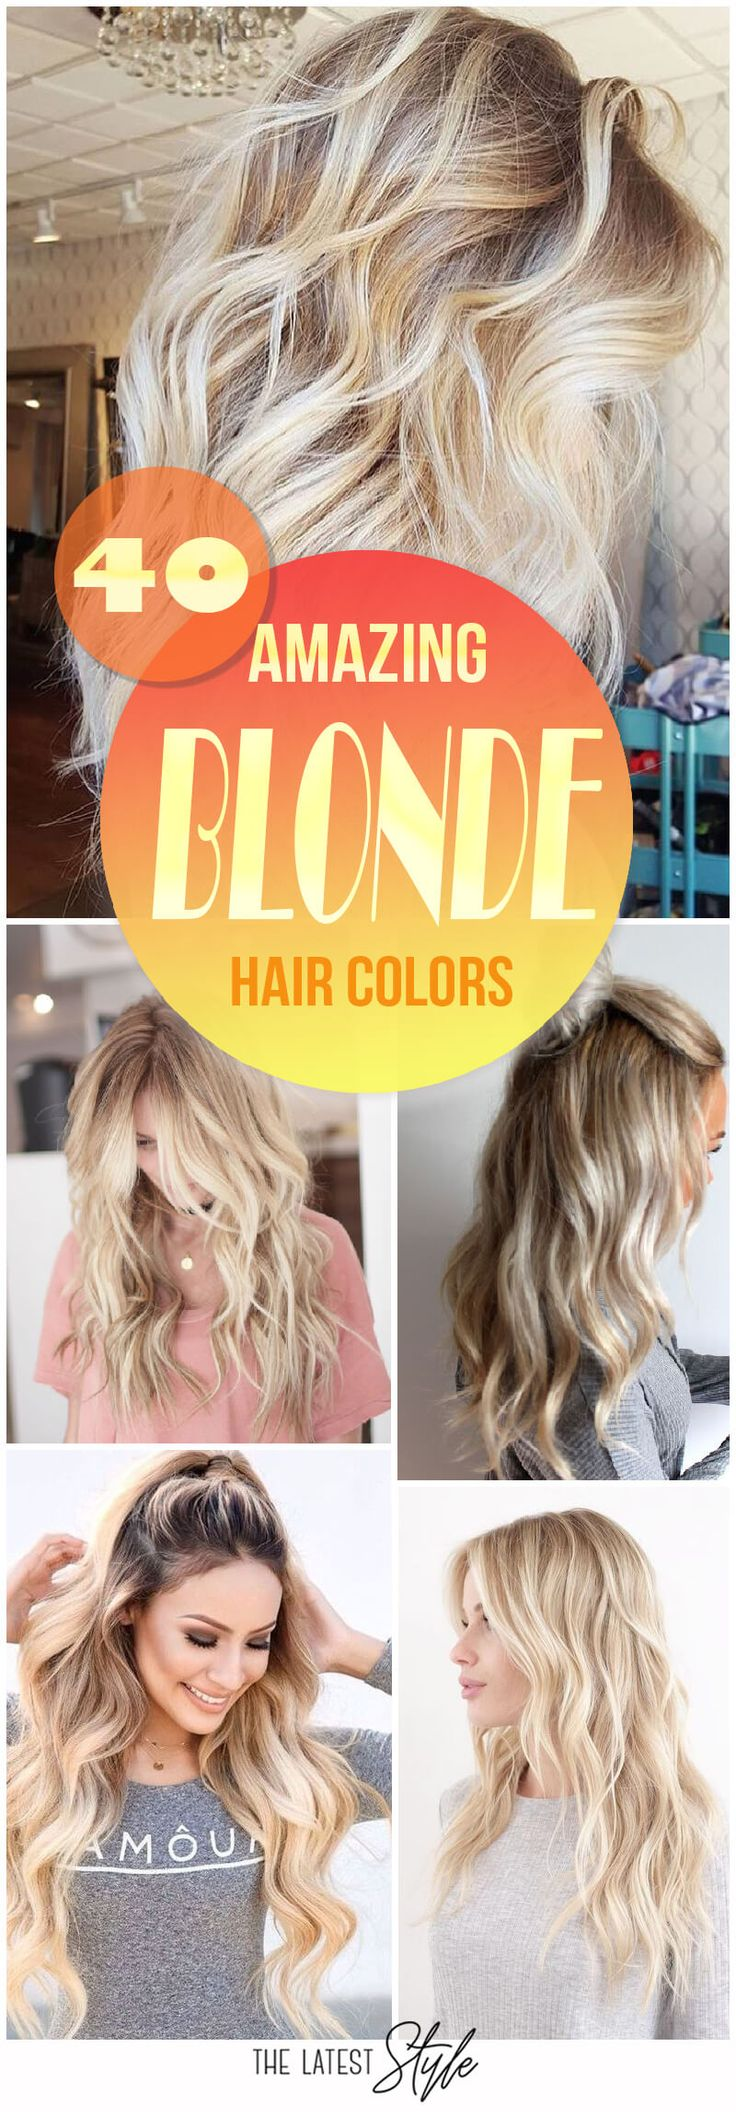 Summer Hairstyles 40 Blond Hairstyles That Will Make You Look